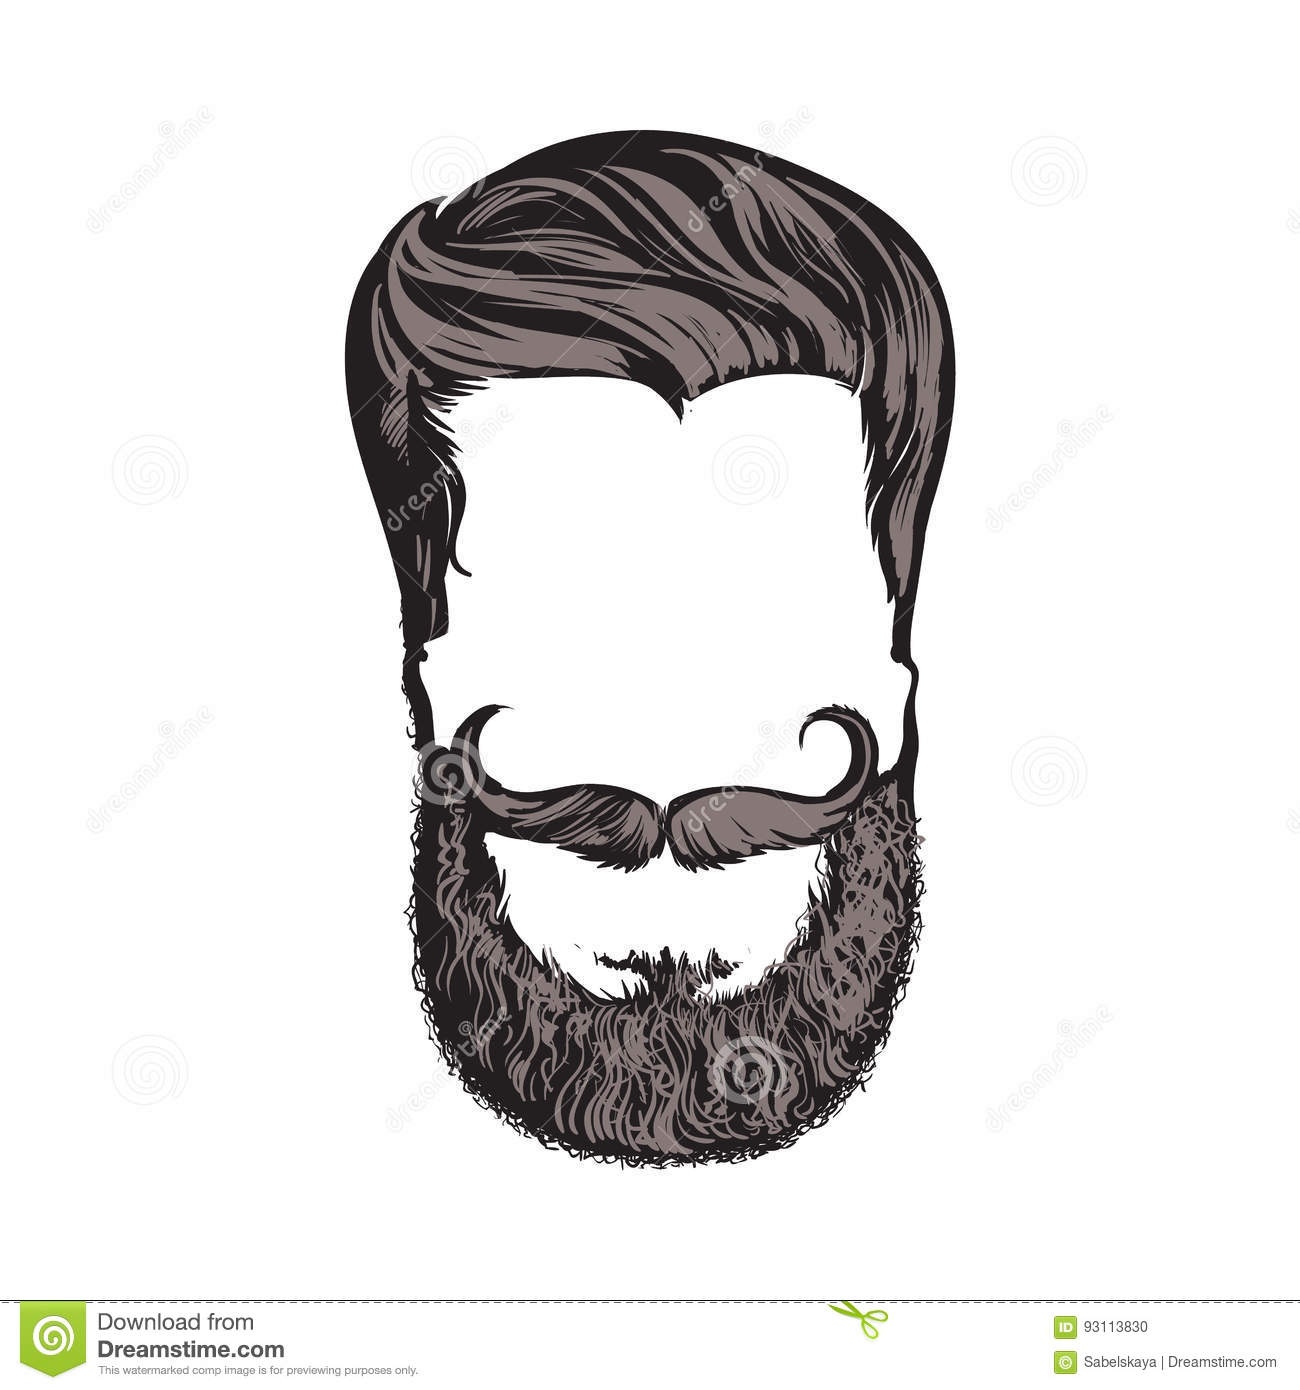 Hand Drawn Hipster Hairstyle Beard And Mustache Sketch Vector